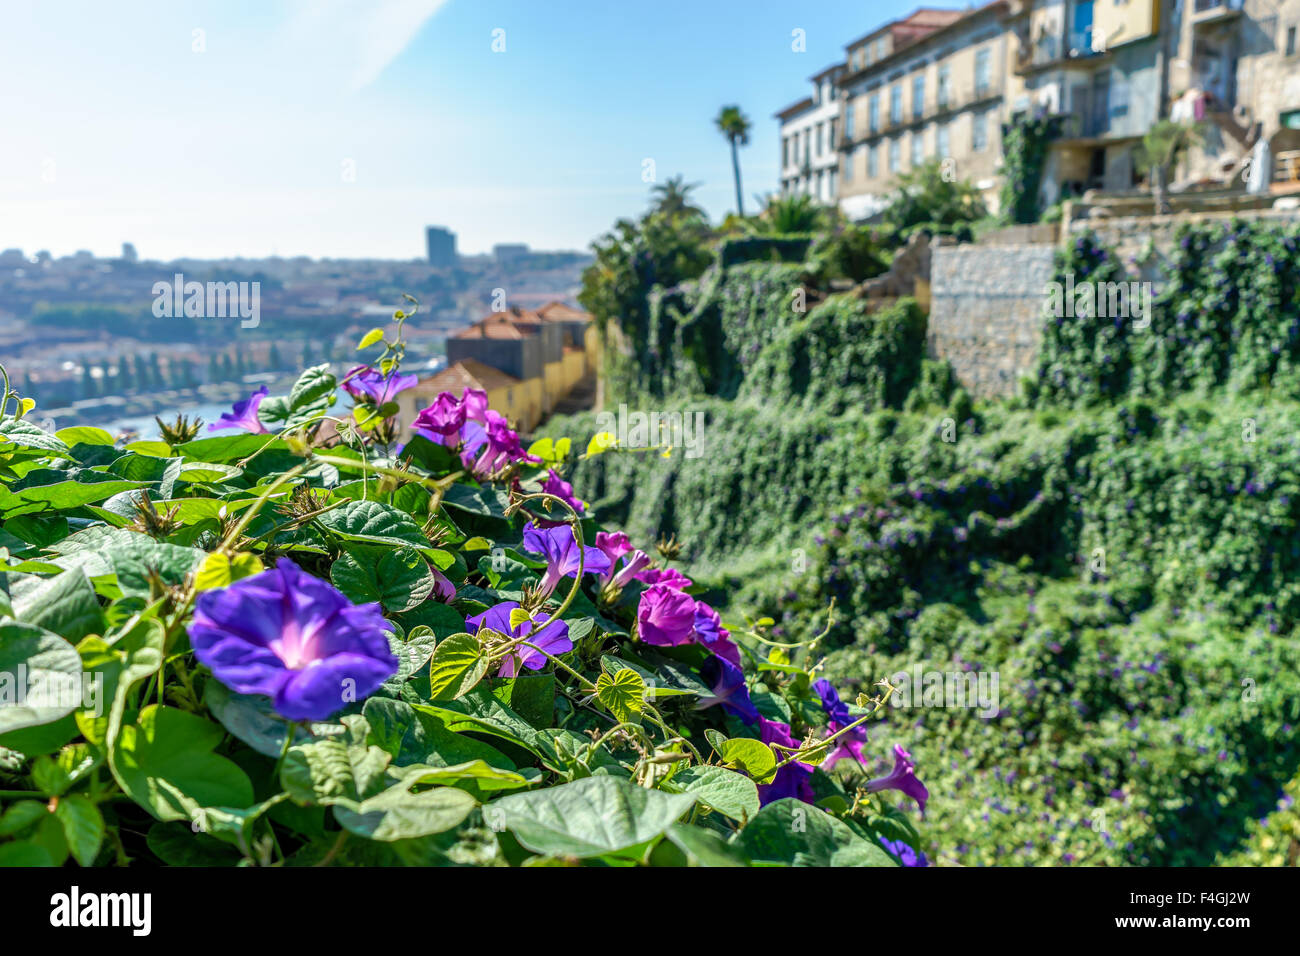 Purple morning glory flowers hang and cover Porto buildings. October, 2015. Porto, Portugal. - Stock Image